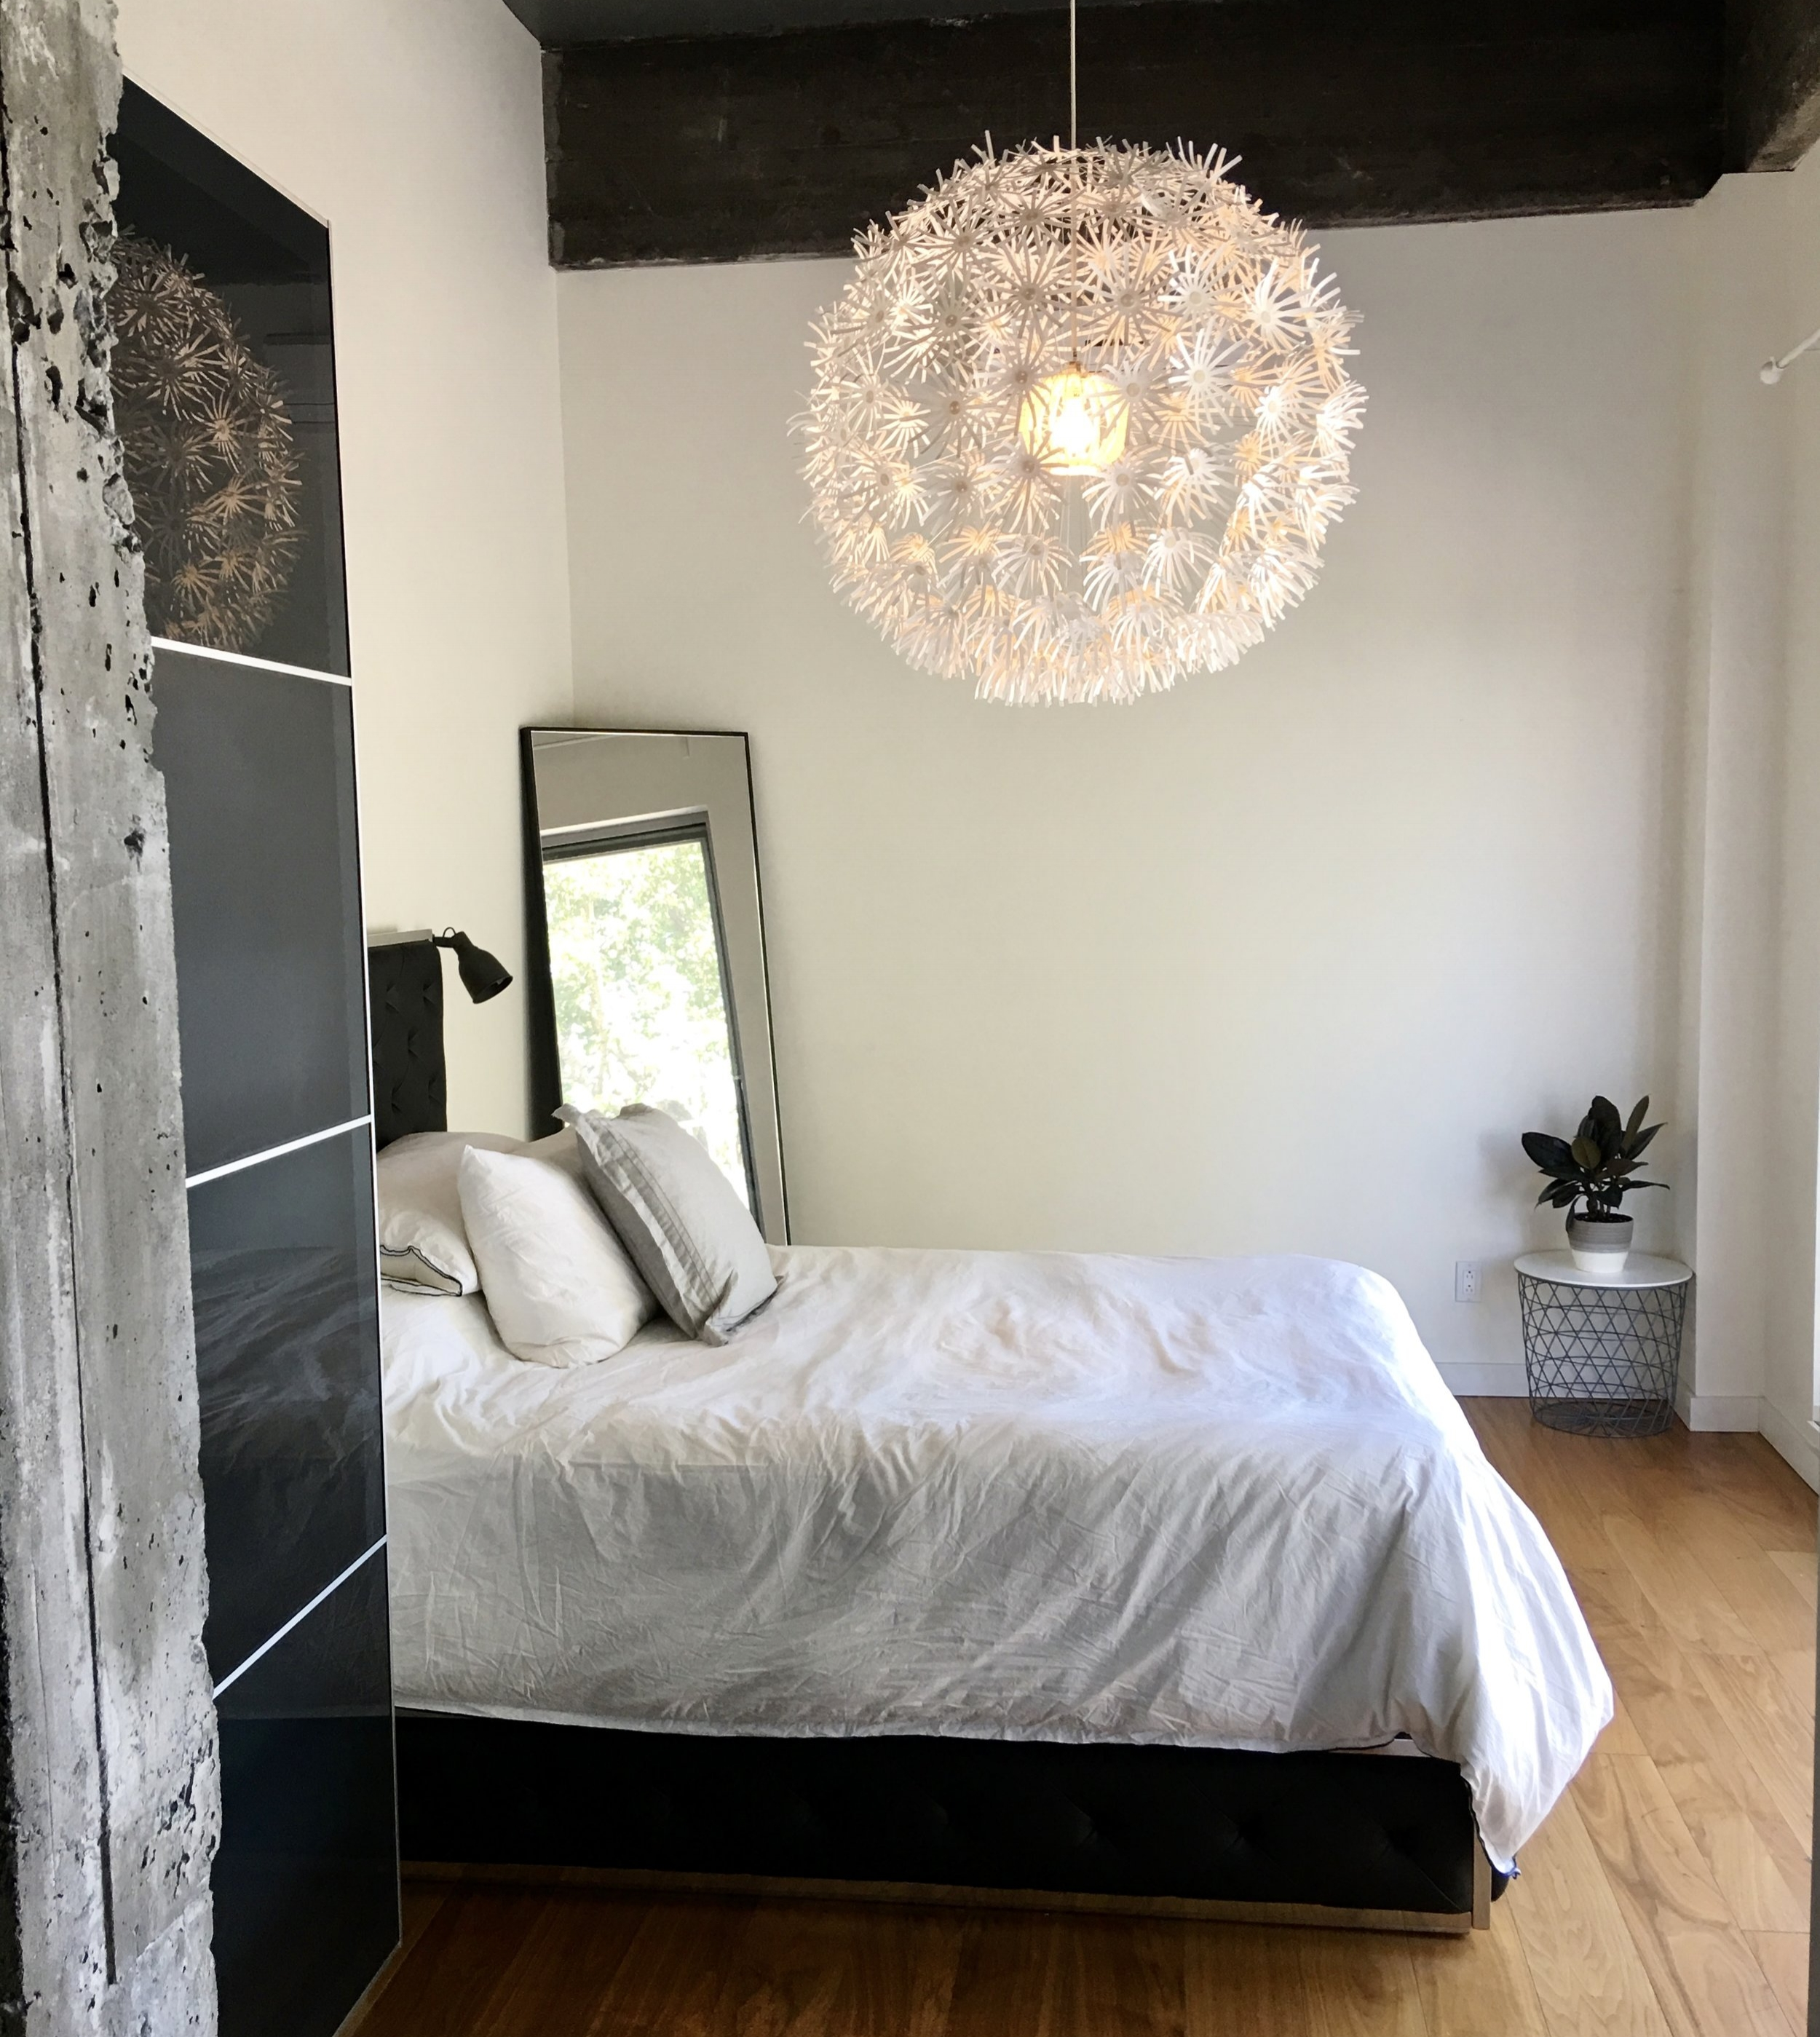 Lofts St-André - The Saint-Andre lofts offer a living space close to the neighbourhood's best cafes, restaurants and shops. With the Jean-Talon Market just a few minutes away, Villeray is a happening area. Find out if this is the right neighbourhood for you.